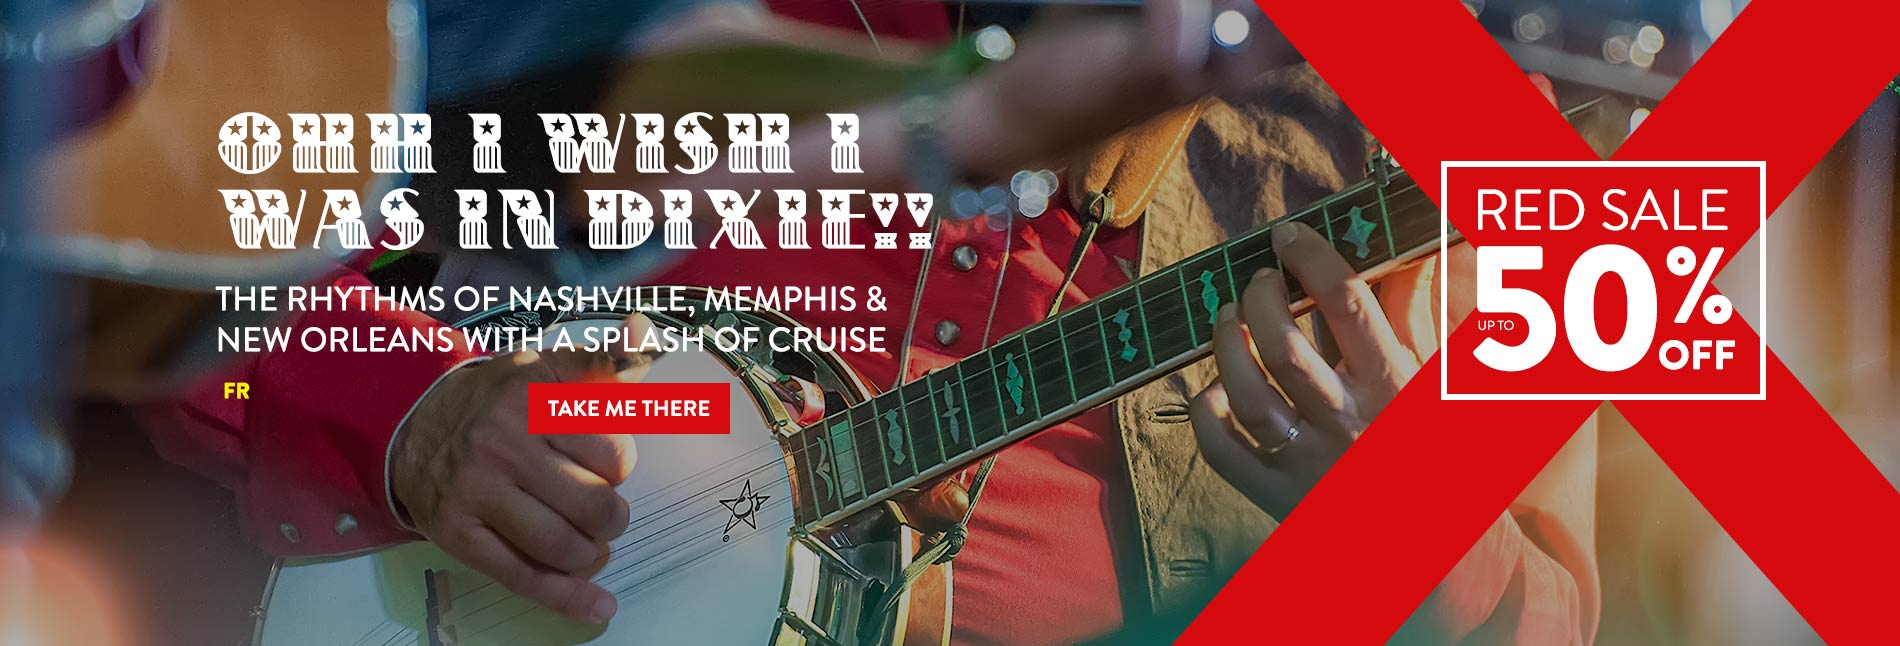 Nashville, Memphis & New Orleans Cruise Deals